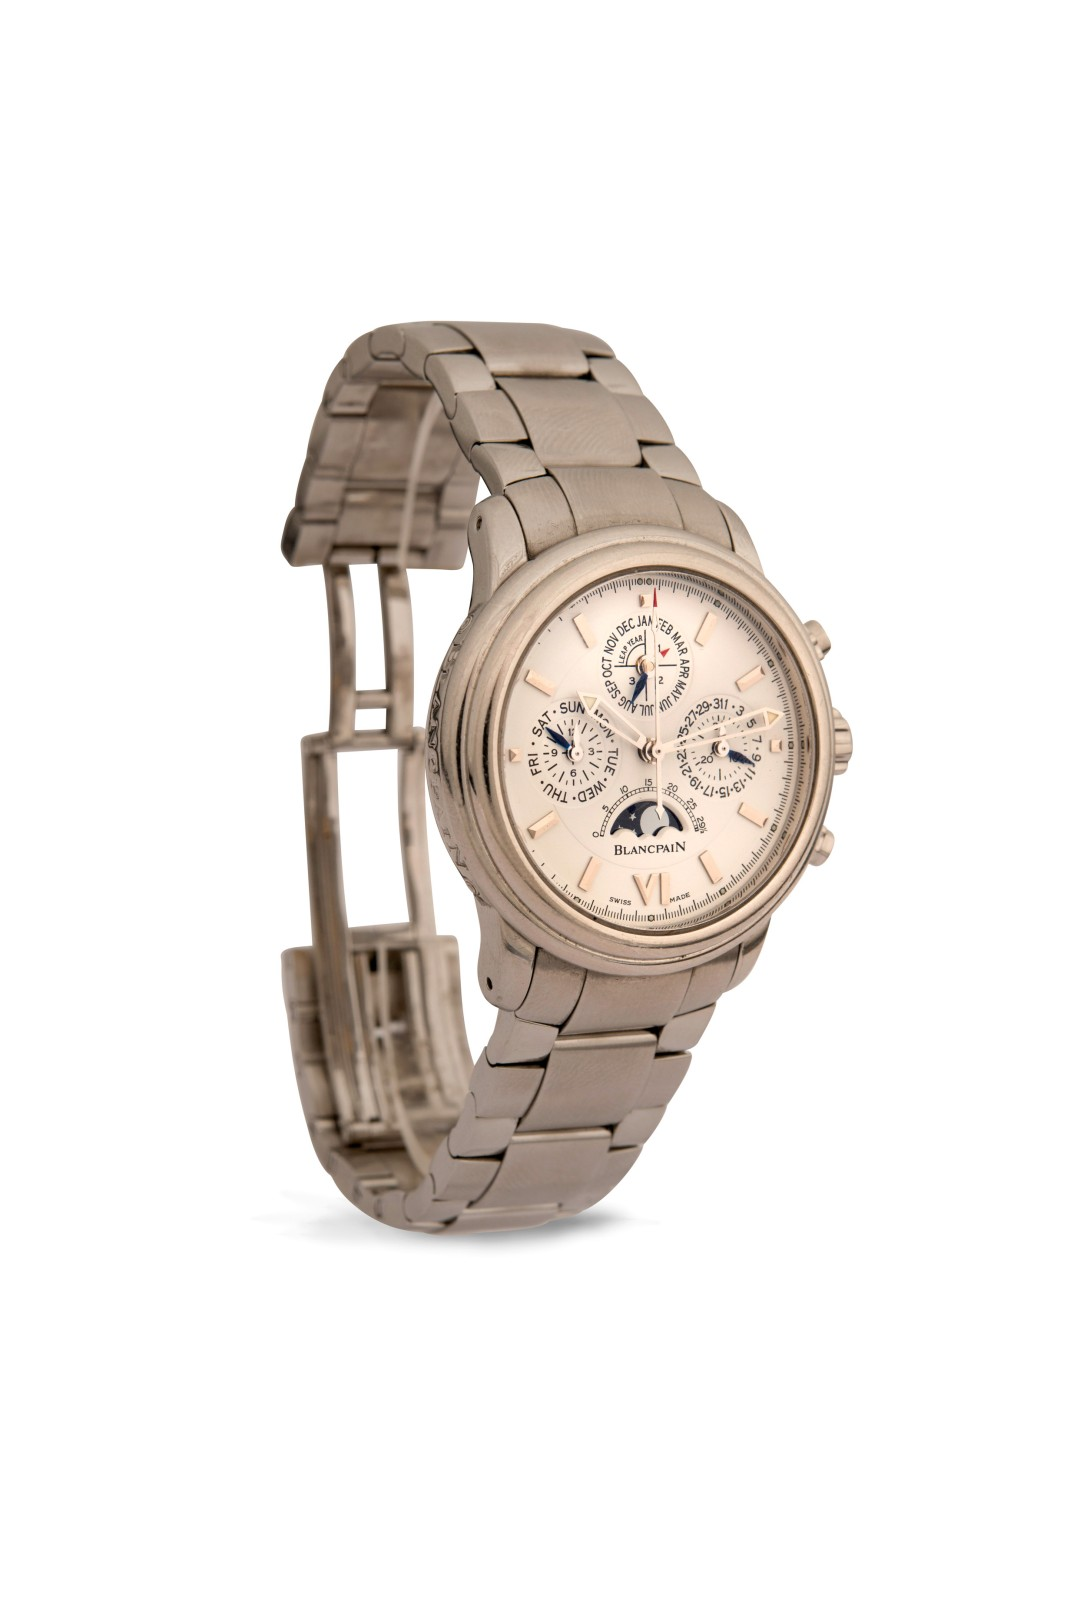 RondeModèle BlancpainMontre Homme Homme RondeModèle BlancpainMontre BlancpainMontre ''leman''Ref2585Chrono ''leman''Ref2585Chrono WEYD29IeH